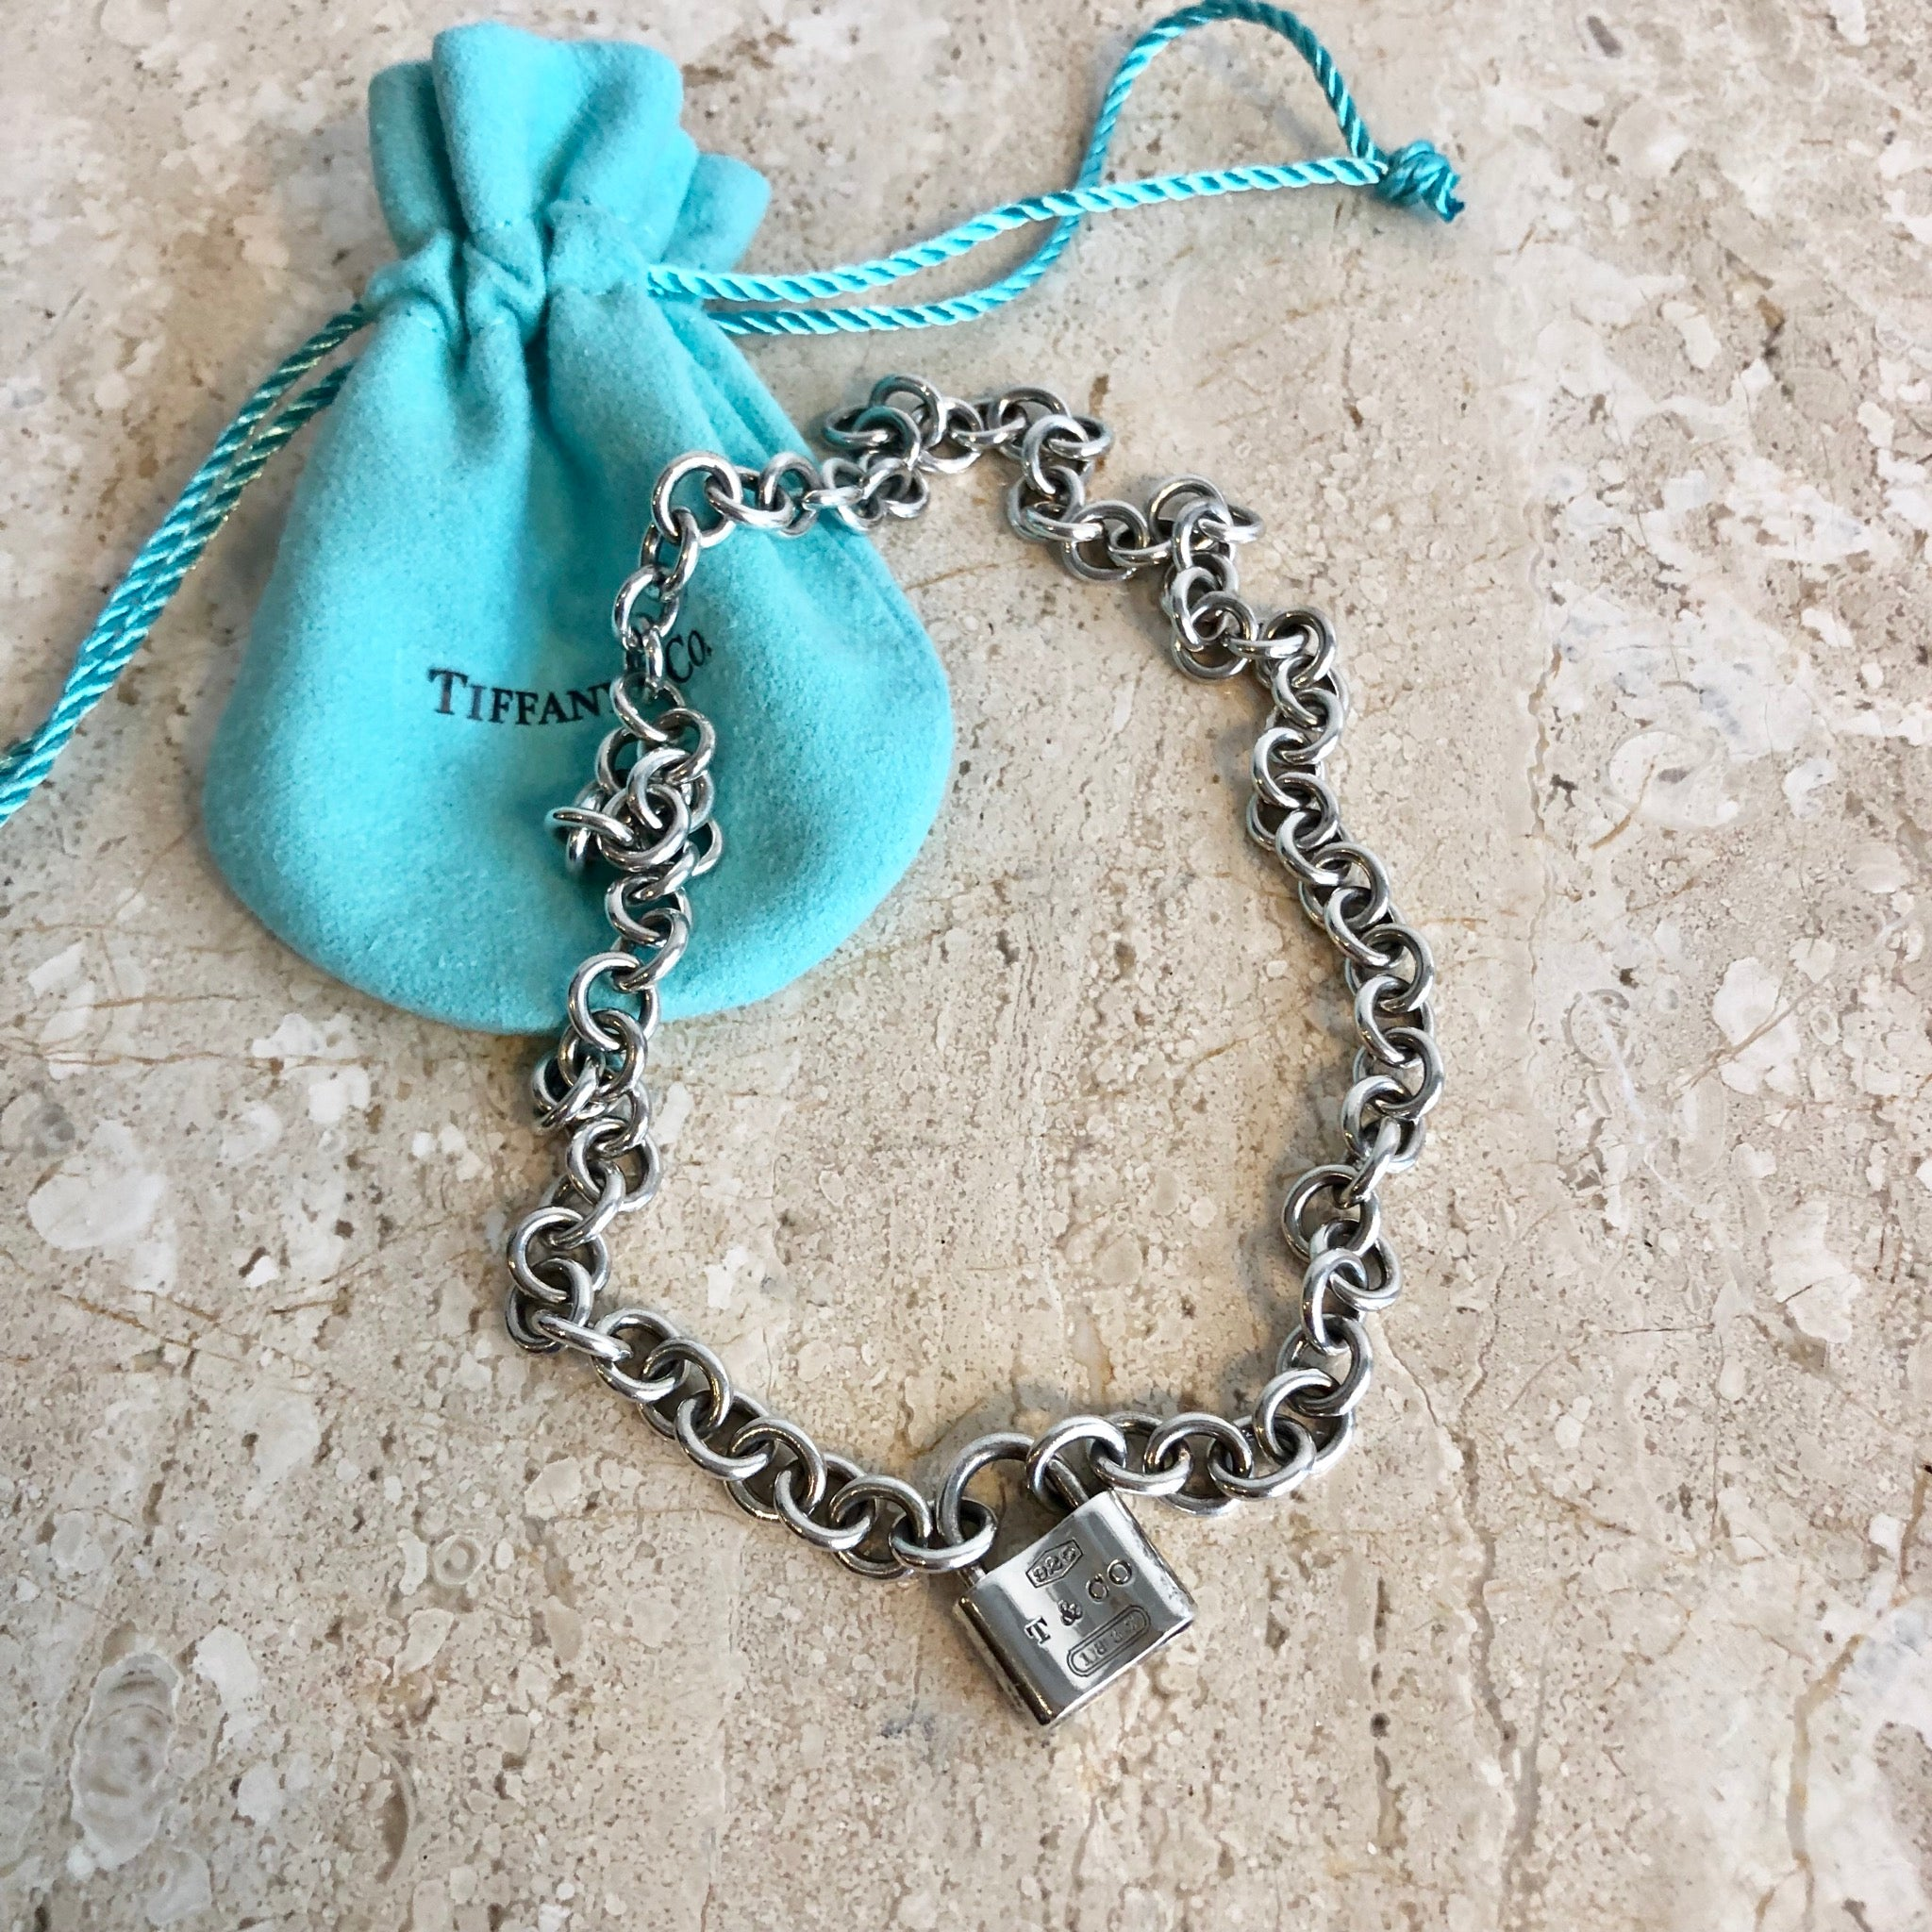 Authentic TIFFANY & CO. Lock Charm Link Necklace